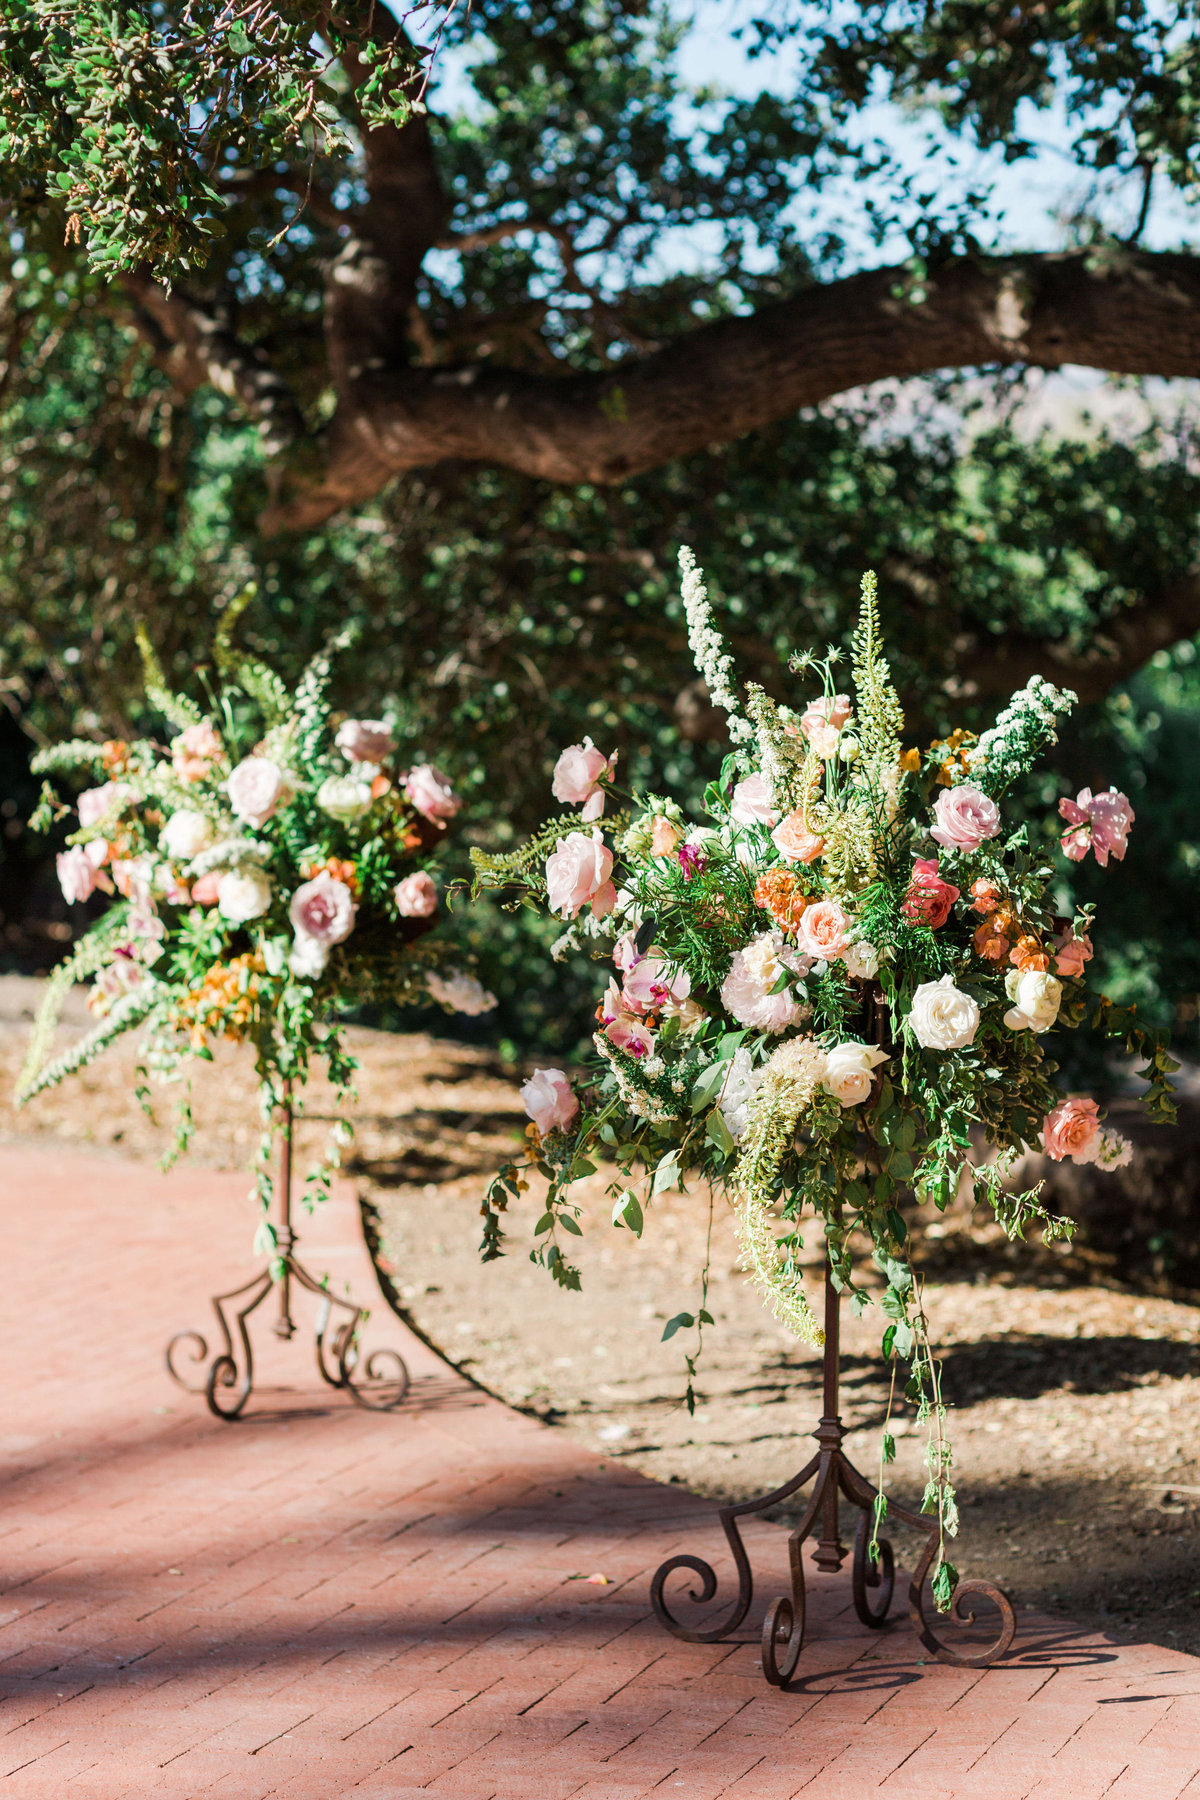 Quail_Ranch_Blush_California_Wedding_Valorie_Darling_Photography - 103 of 151